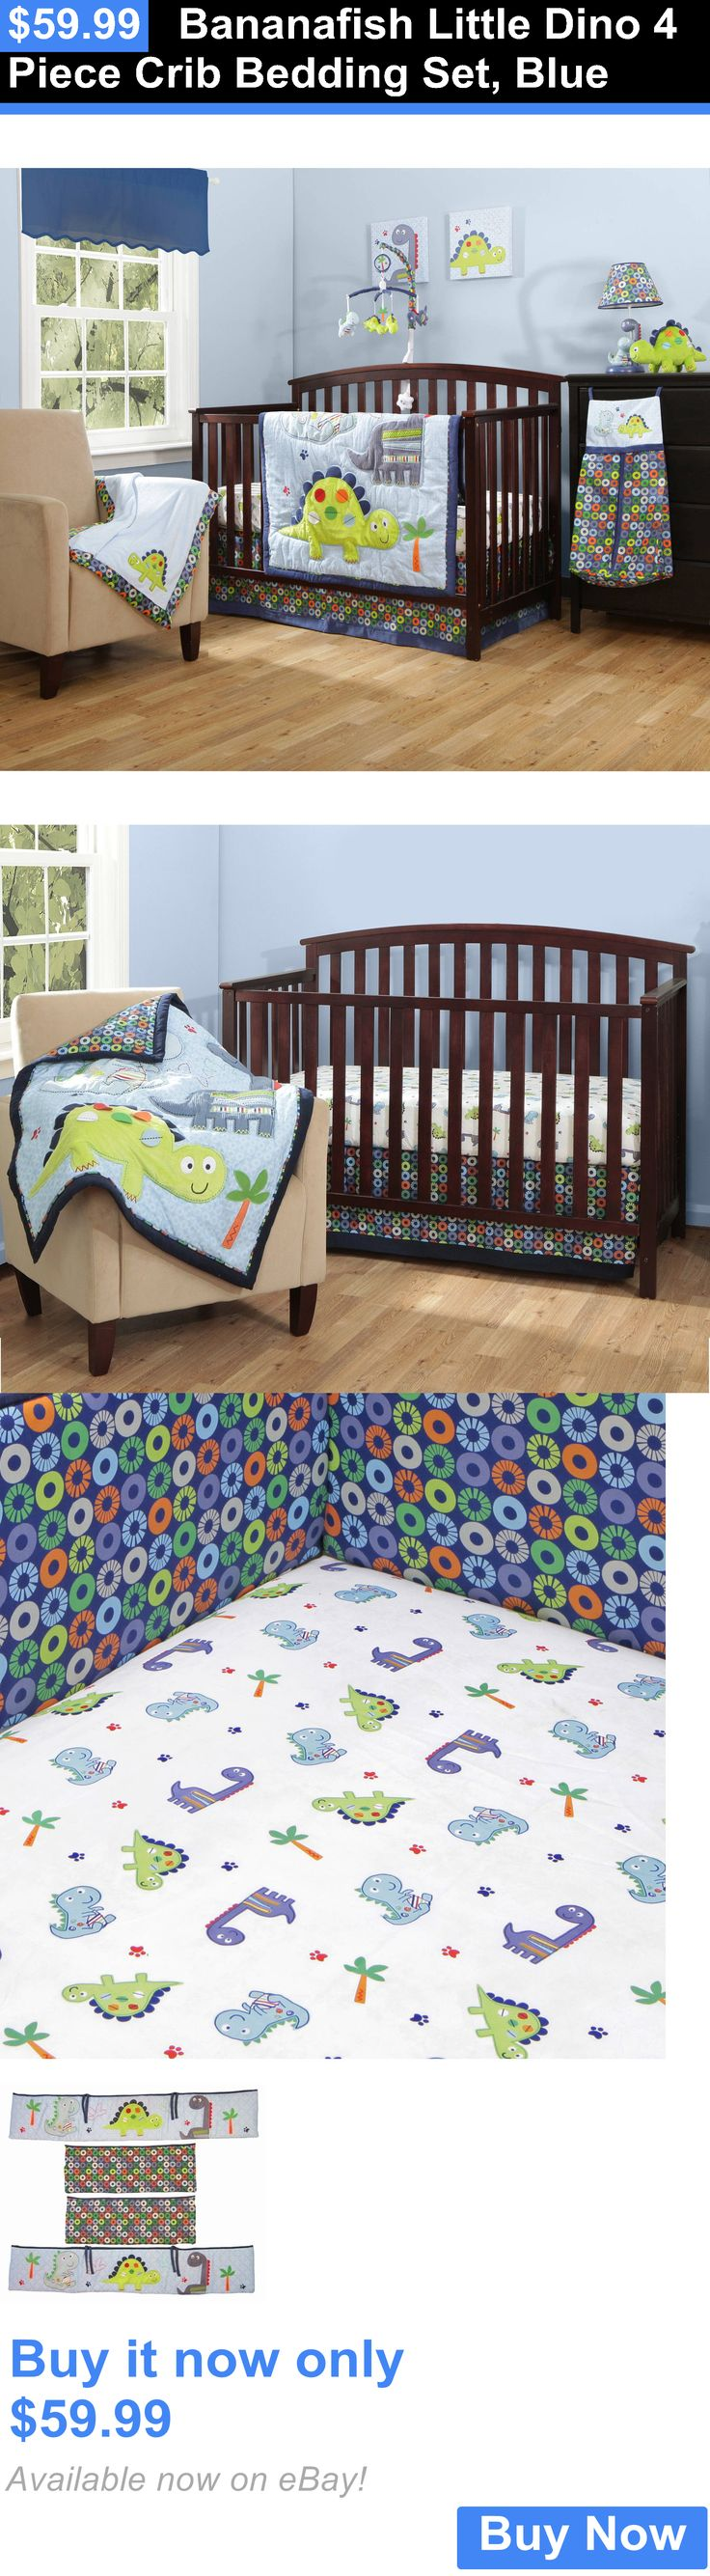 Baby Nursery: Bananafish Little Dino 4 Piece Crib Bedding Set, Blue BUY IT NOW ONLY: $59.99